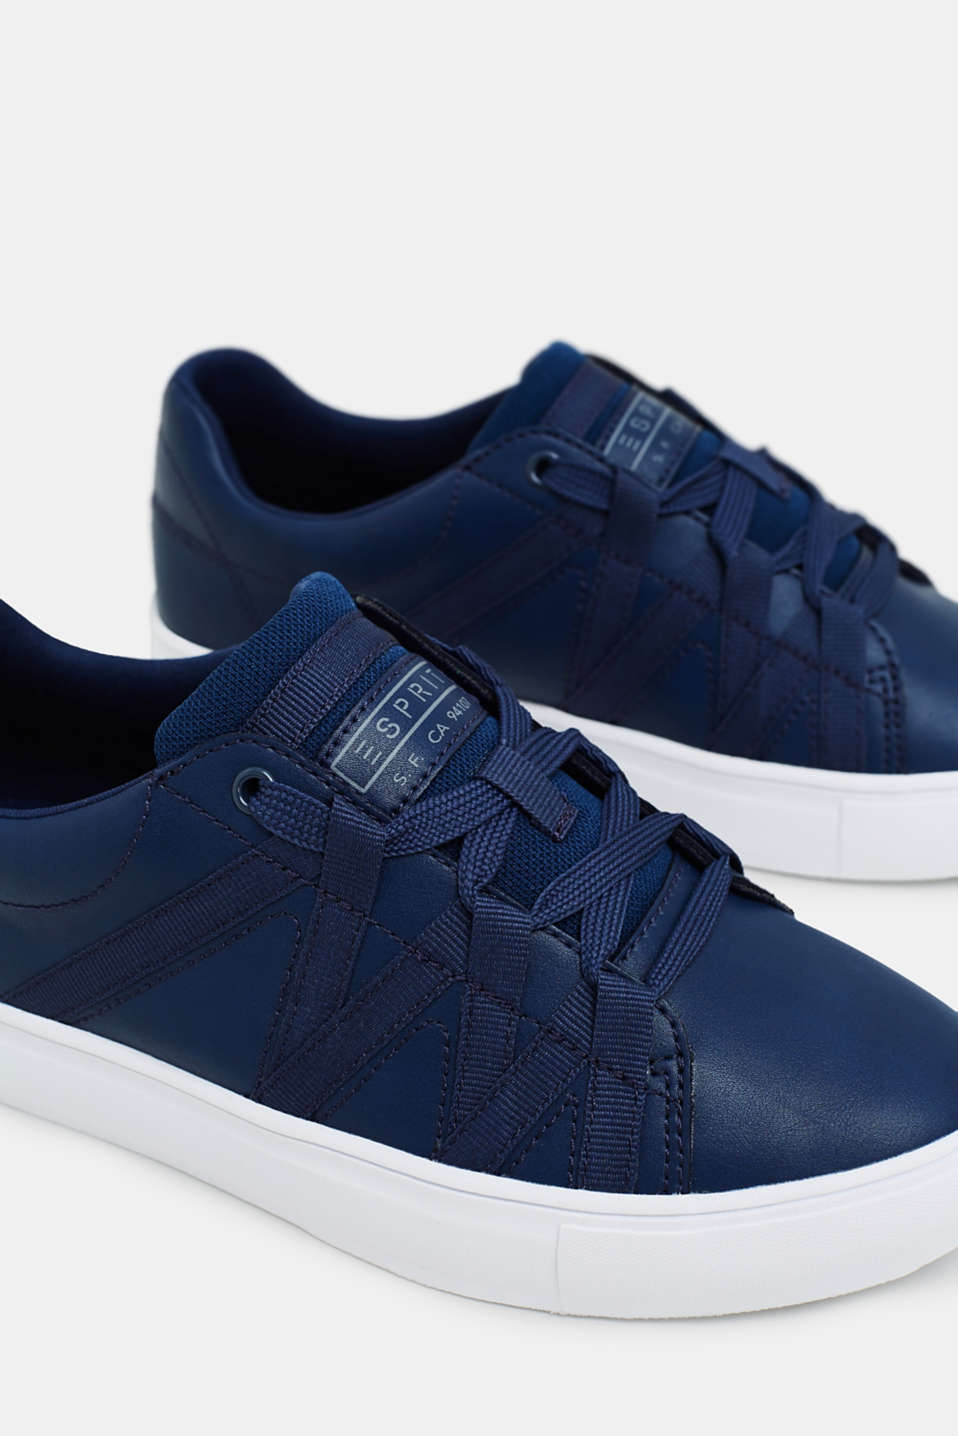 Casual Shoes others, NAVY, detail image number 4